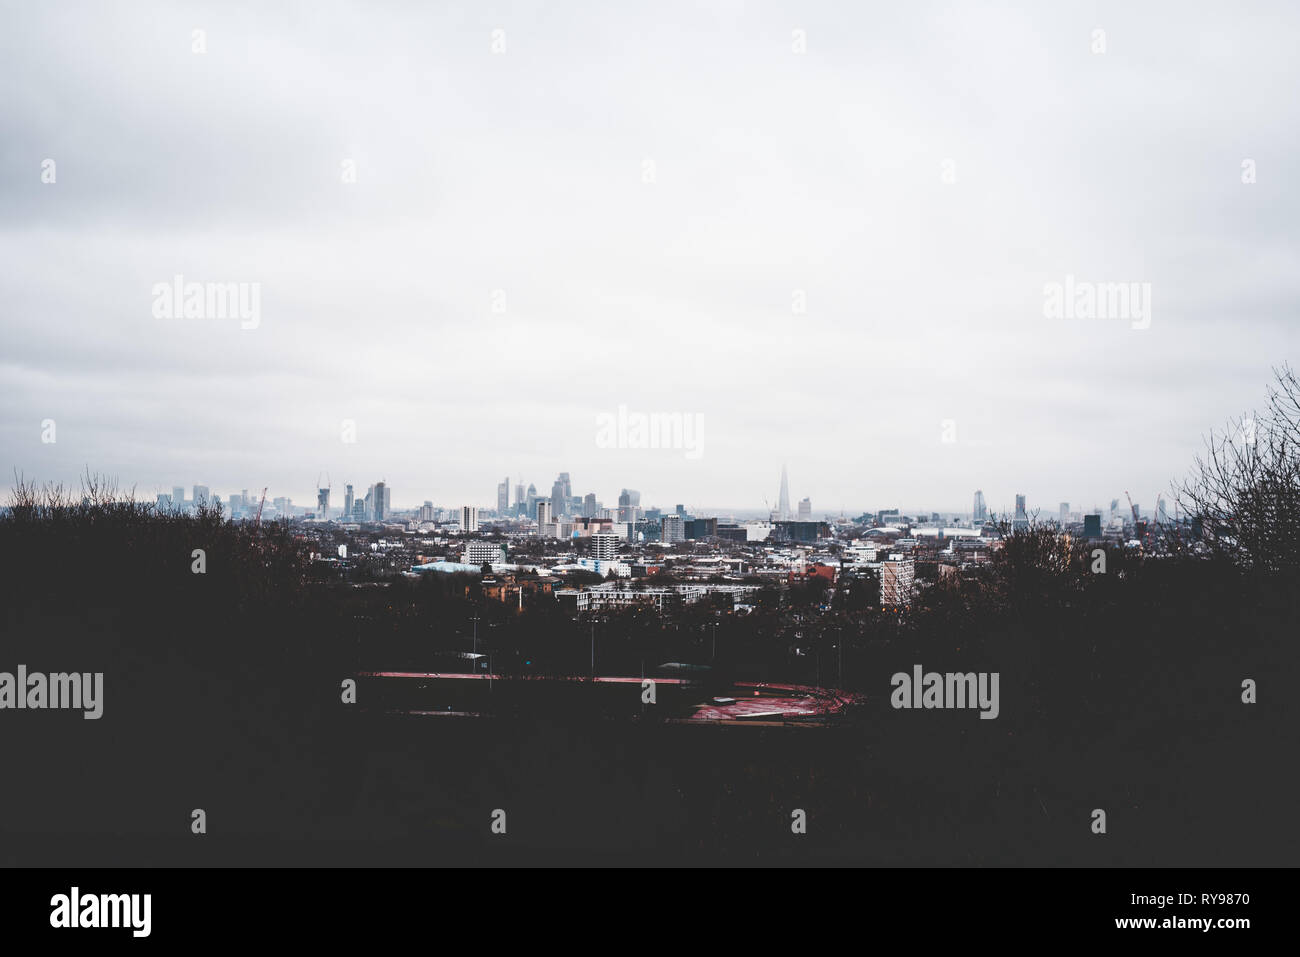 Panorama of murk London with high skyscrapers and cloudy heaven - Stock Image